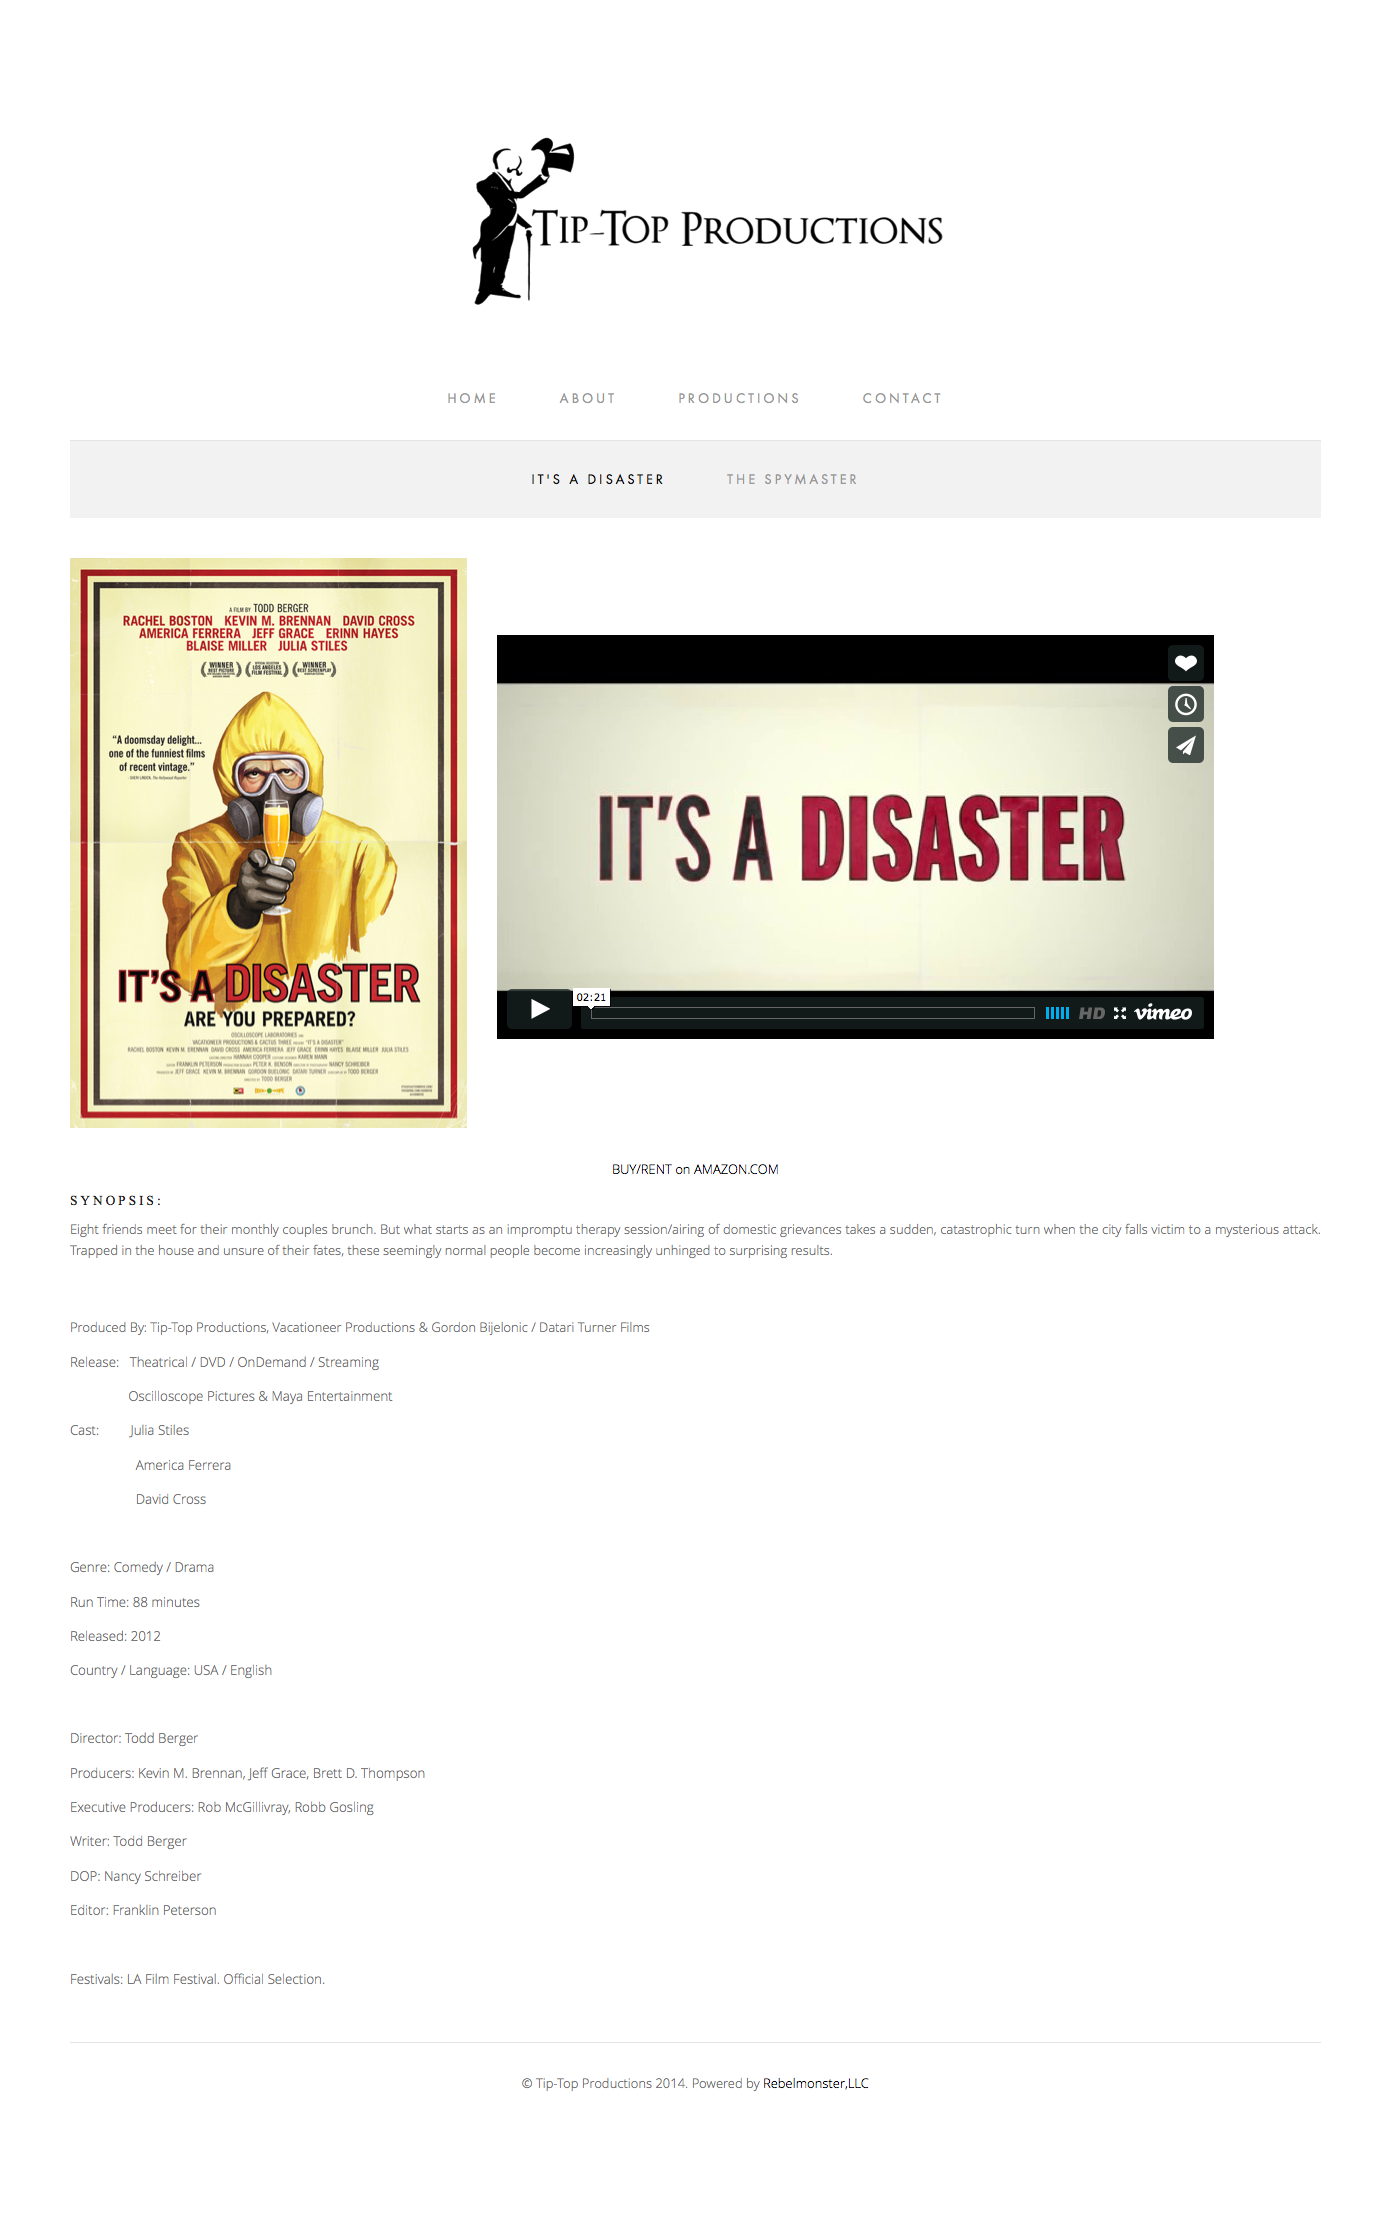 It_s_A_Disaster_—_Tip-Top_Productions_-_2014-07-16_18.35.35.png